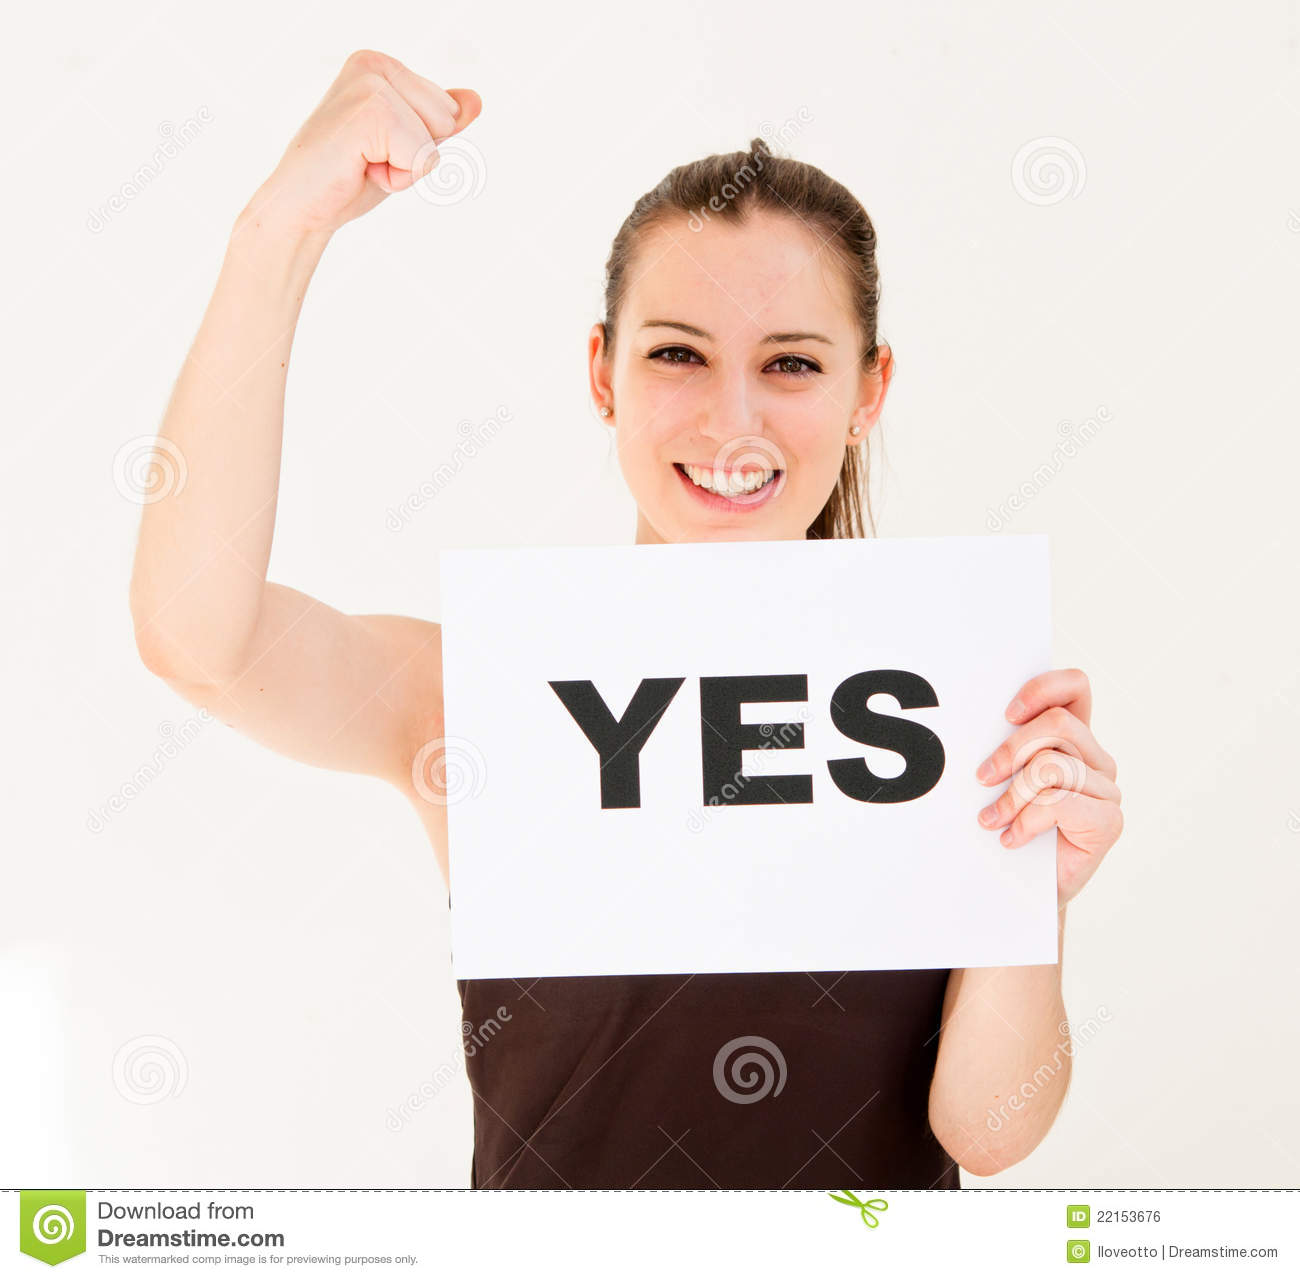 Woman With Board Yes Royalty Free Stock Image - Image: 22153676 Woman